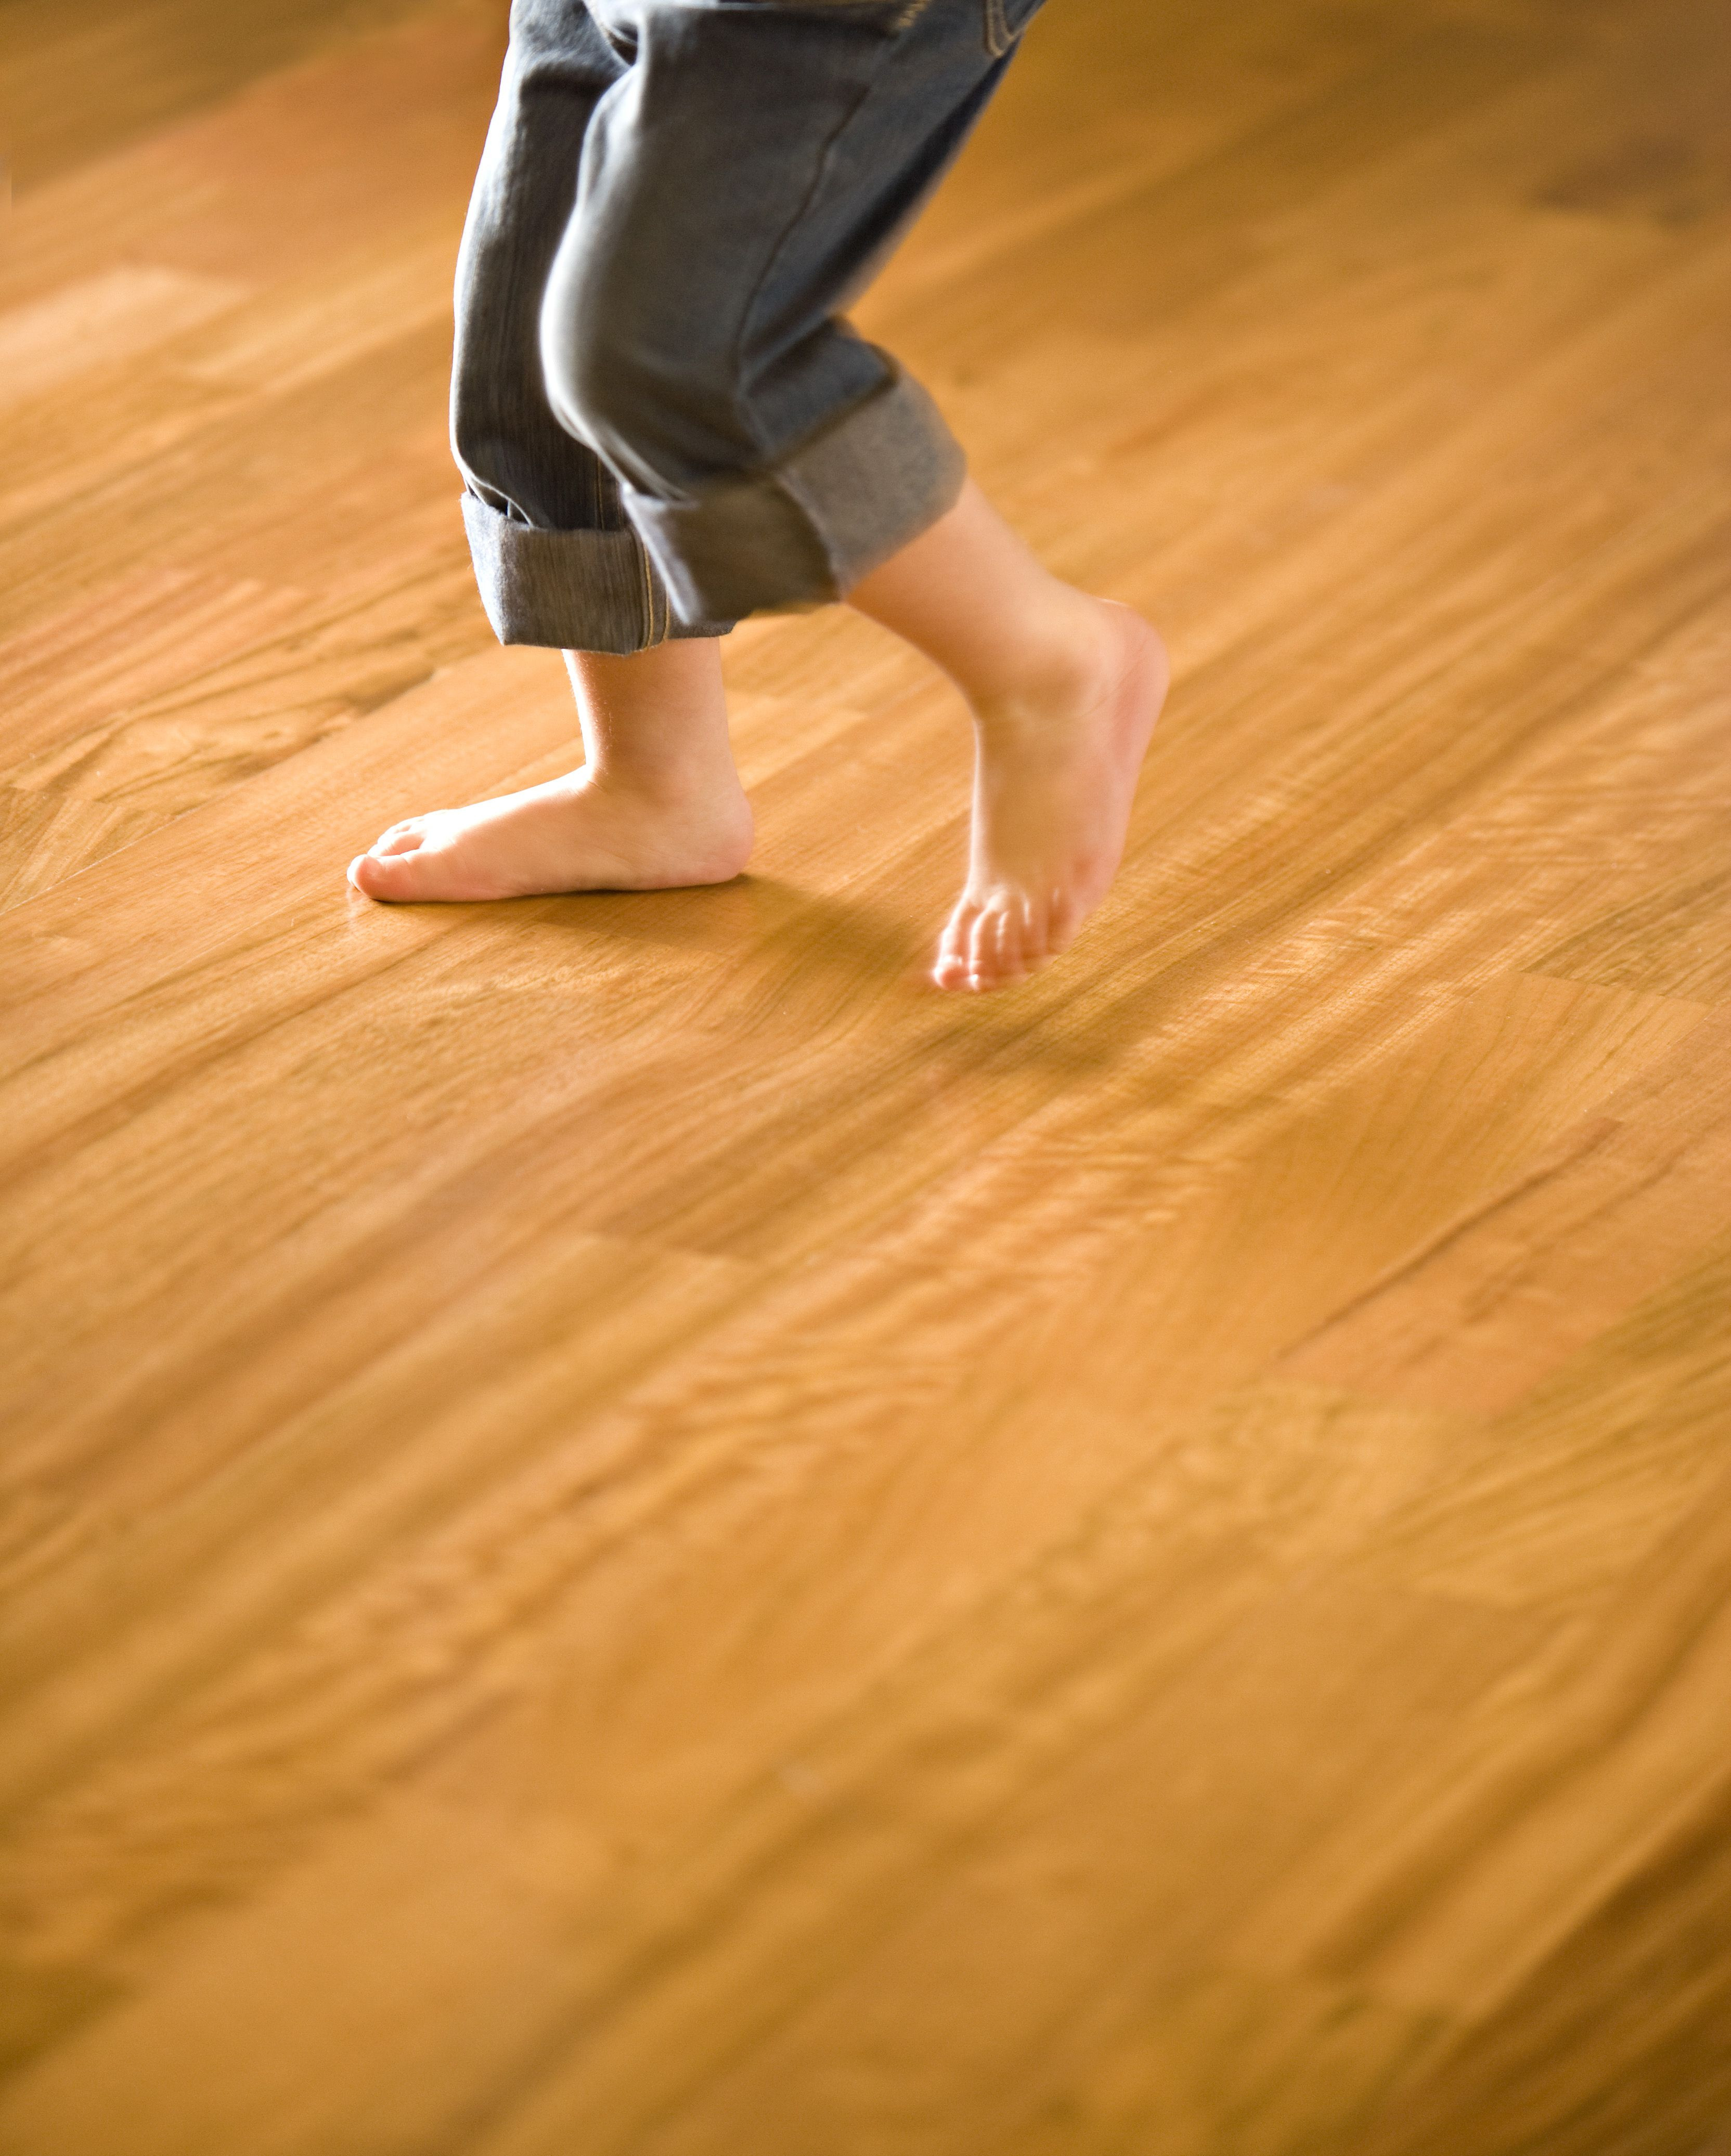 bona hardwood floor cleaner uk of make sure your hardwood floors are clean for the tiny bare feet in within make sure your hardwood floors are clean for the tiny bare feet in your home